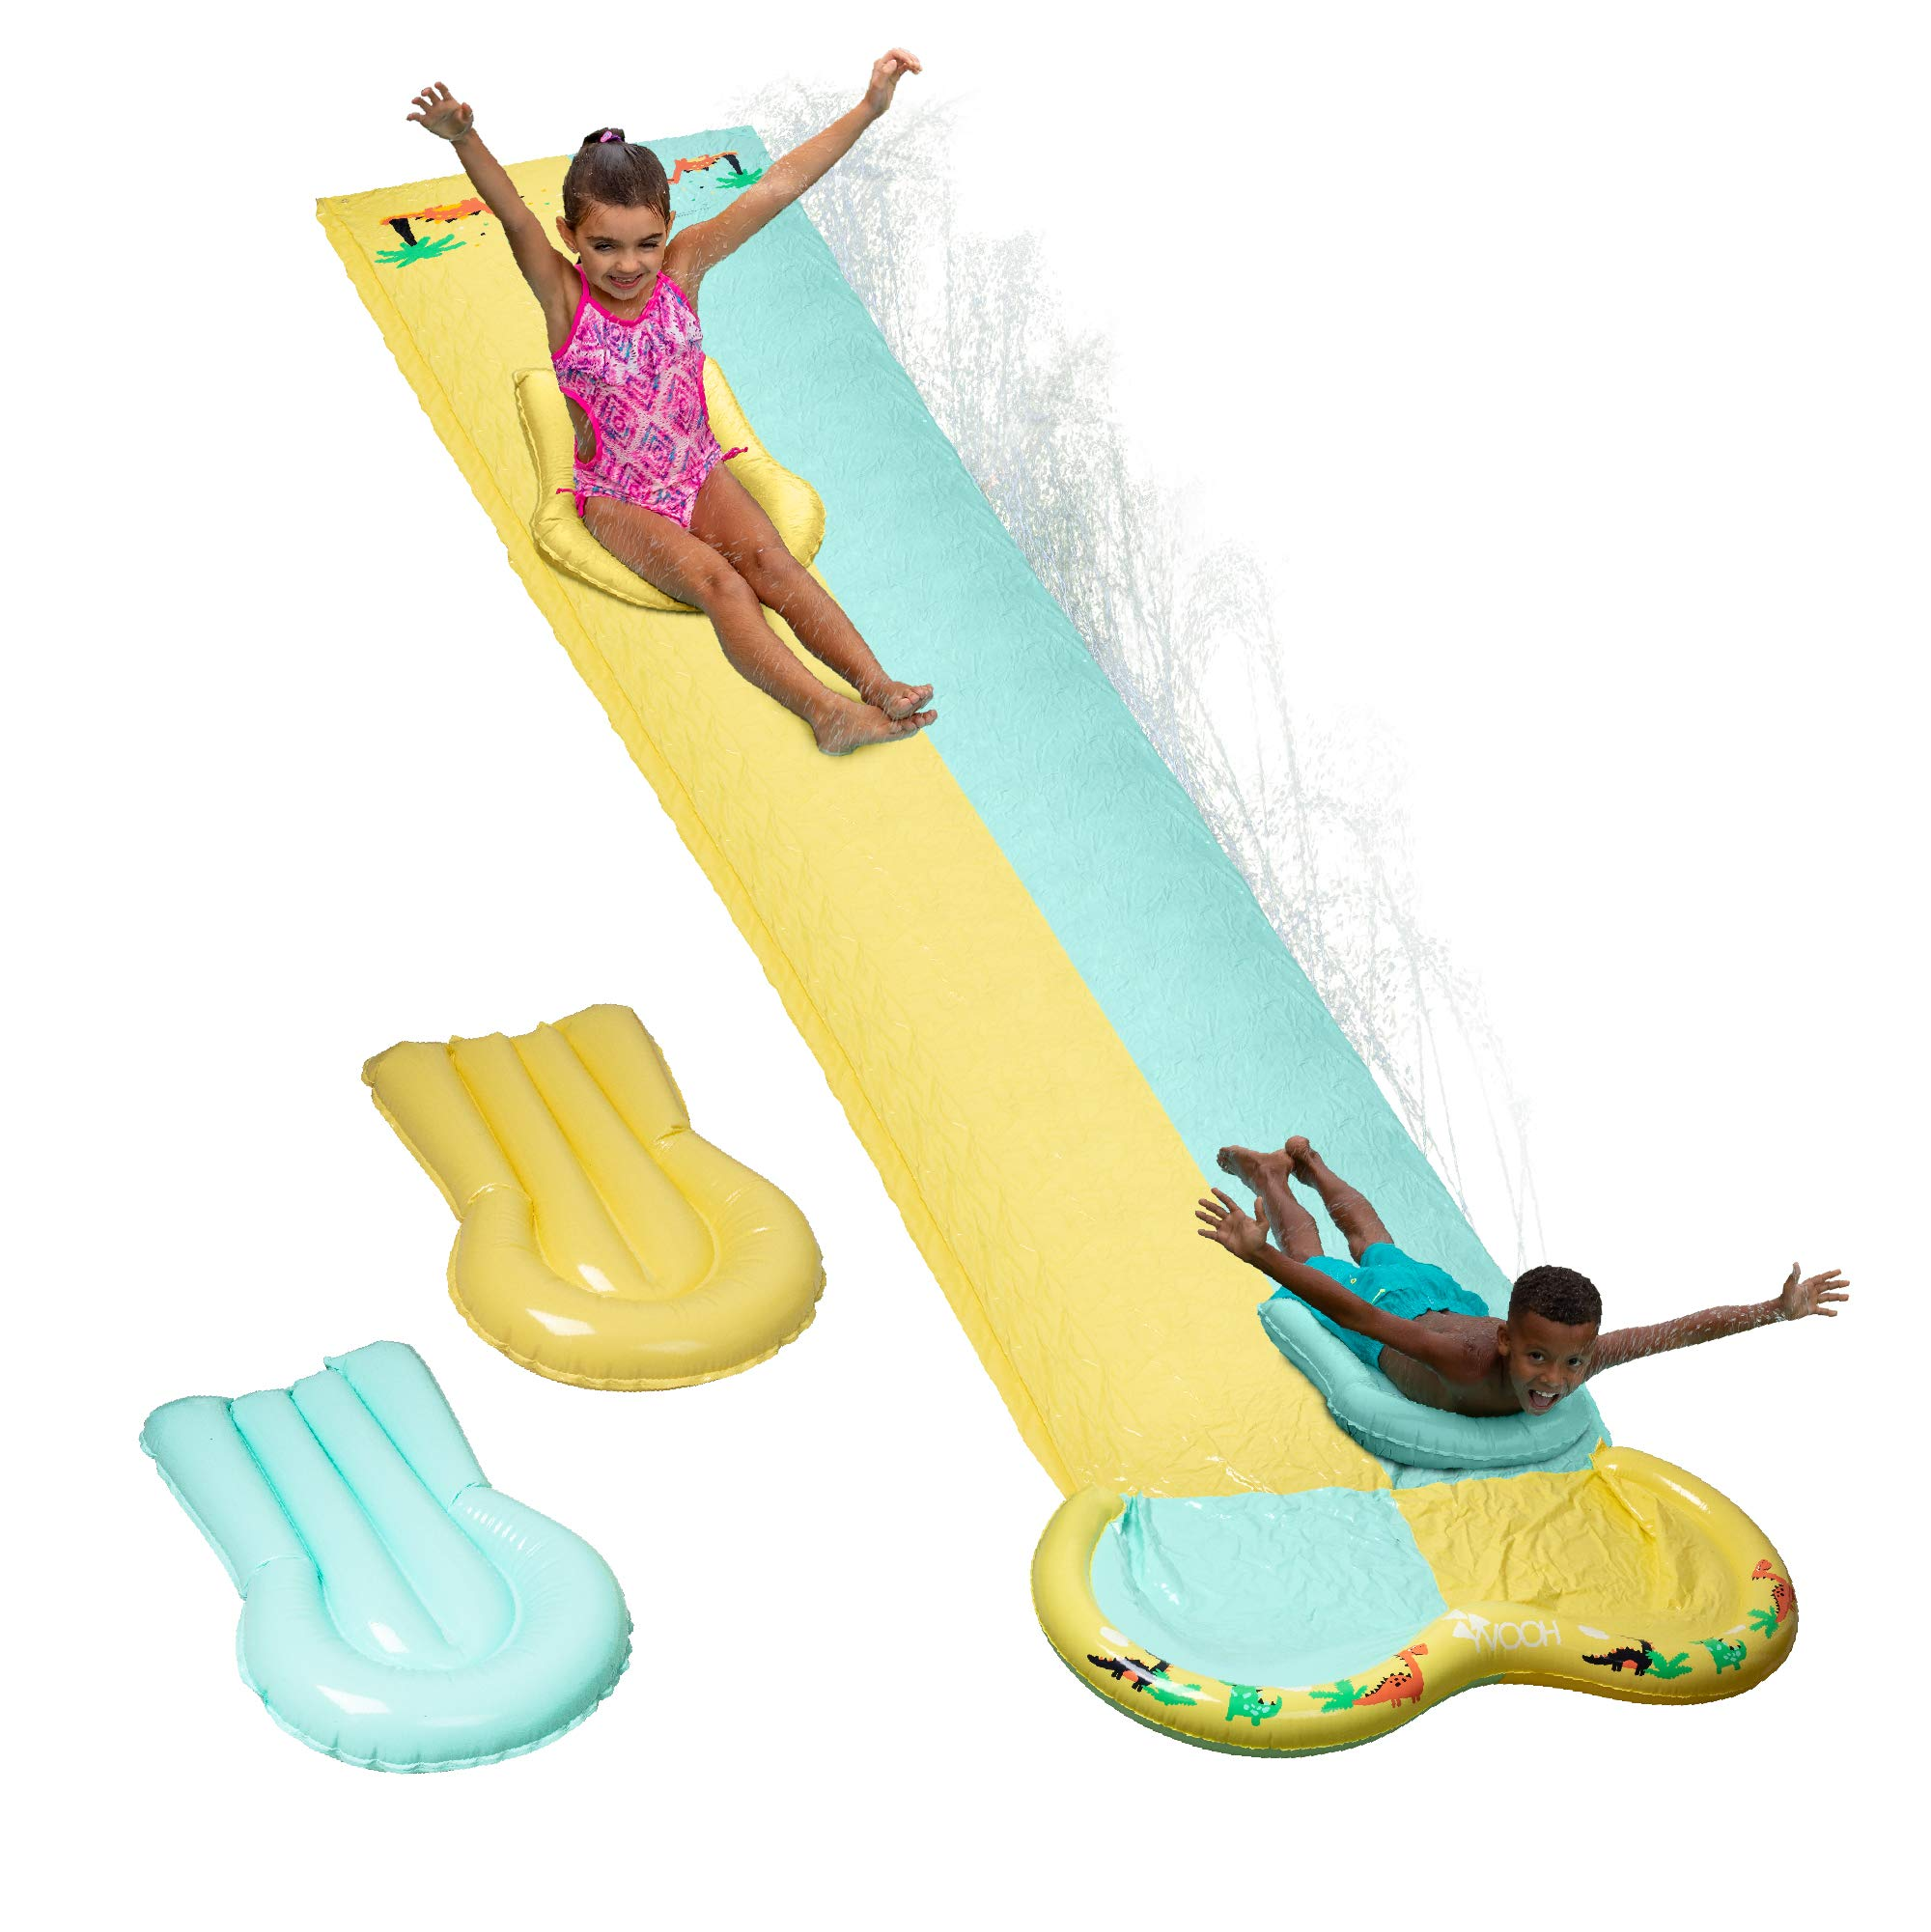 Hoovy Double Multi-Colored Lane Water Slide with Splash Landing | Two Body Boards Included for Kids | Lawn Inflatable Double Water Slides 180 x 53 in. | Watersports for Kids | Outdoor Summer Toys